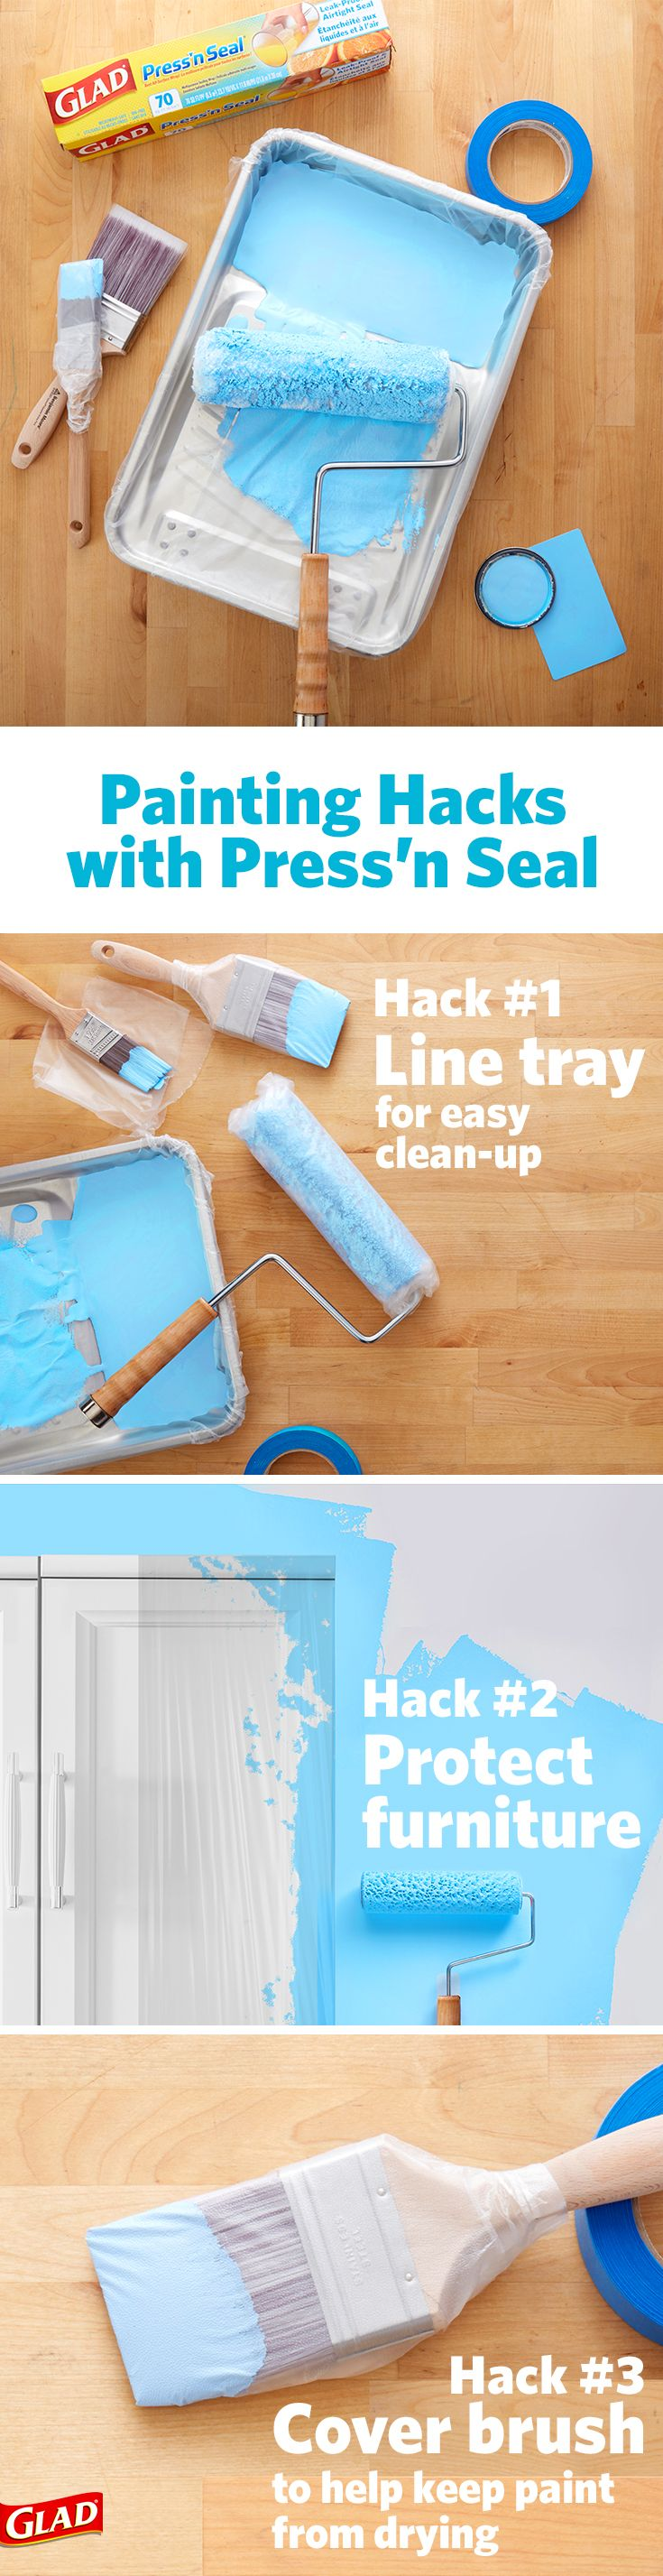 50 best Hacks For The Home images on Pinterest | Cleaning hacks ...